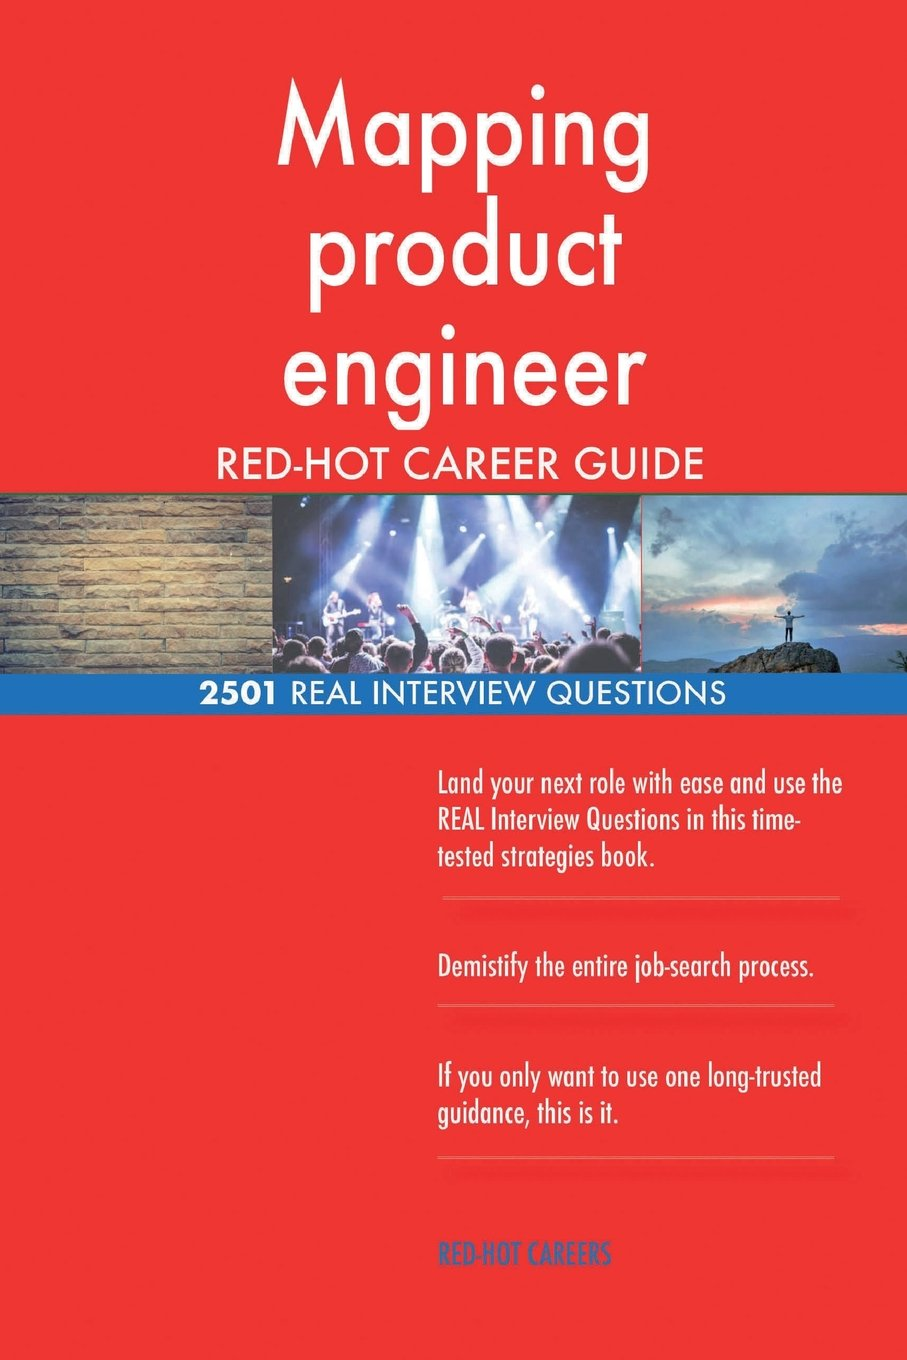 Mapping product engineer RED-HOT Career Guide; 2501 REAL Interview Questions pdf